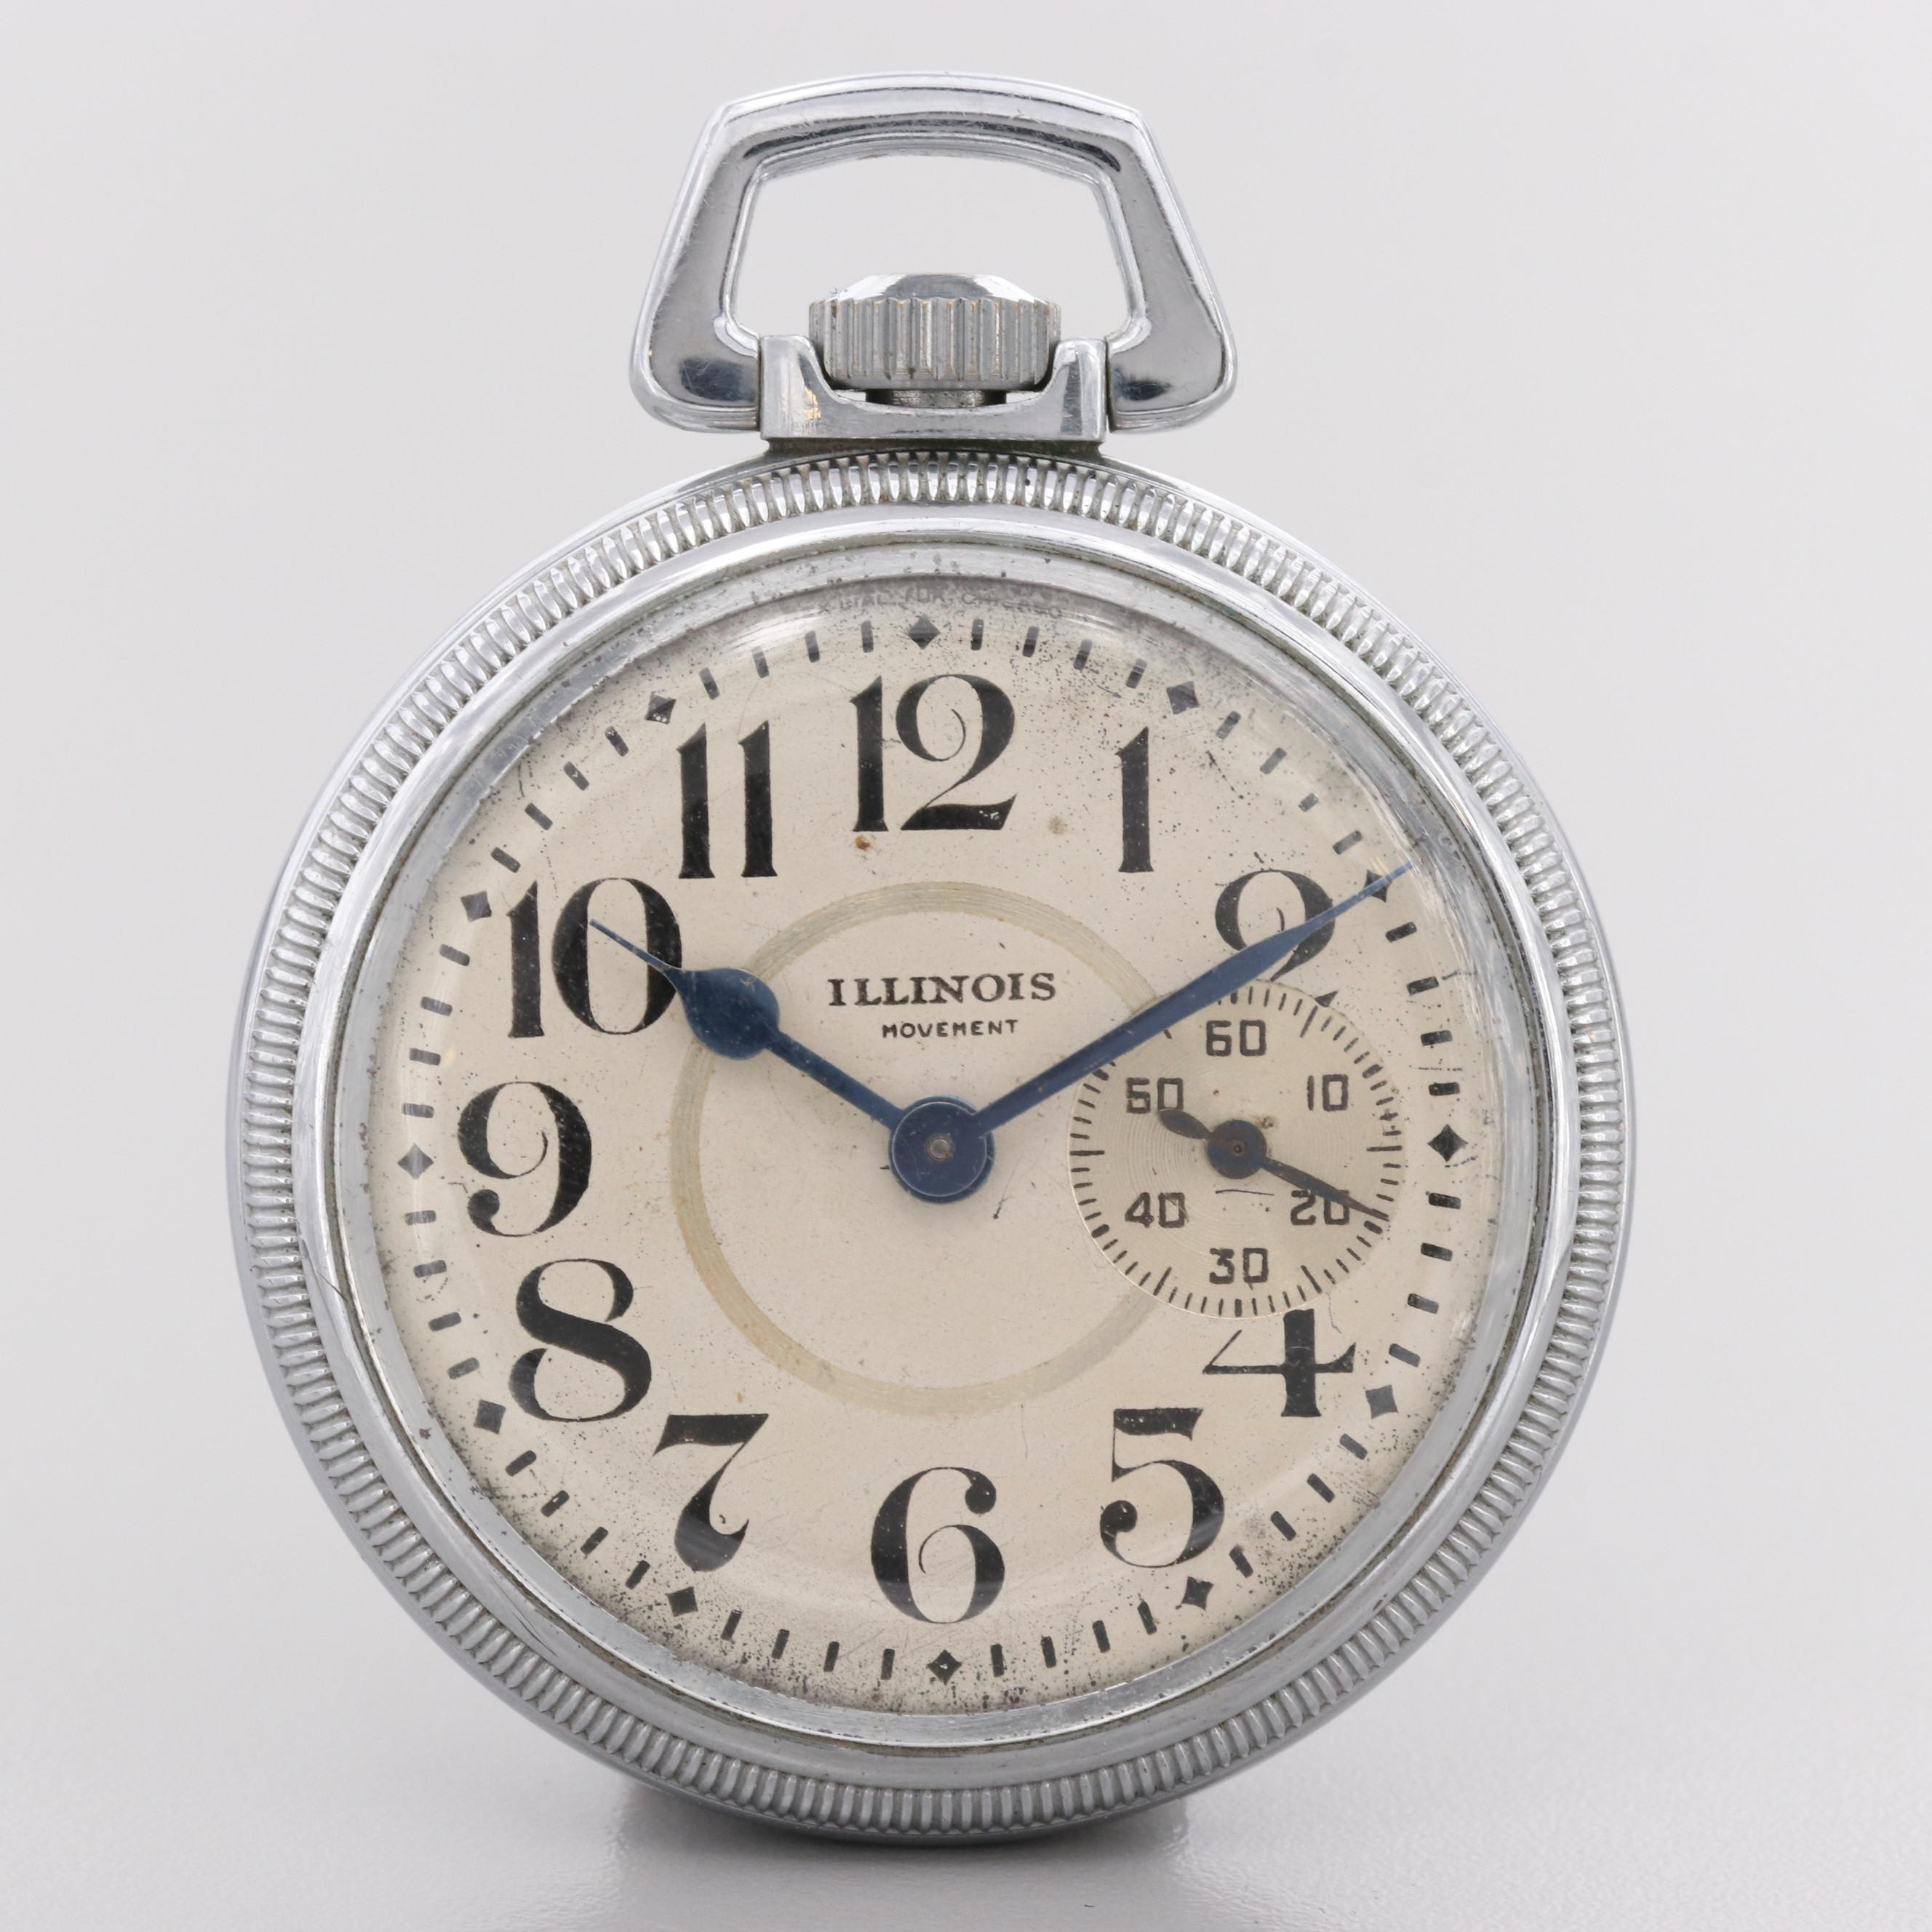 Illinois Silver Tone Pocket Watch, 1914